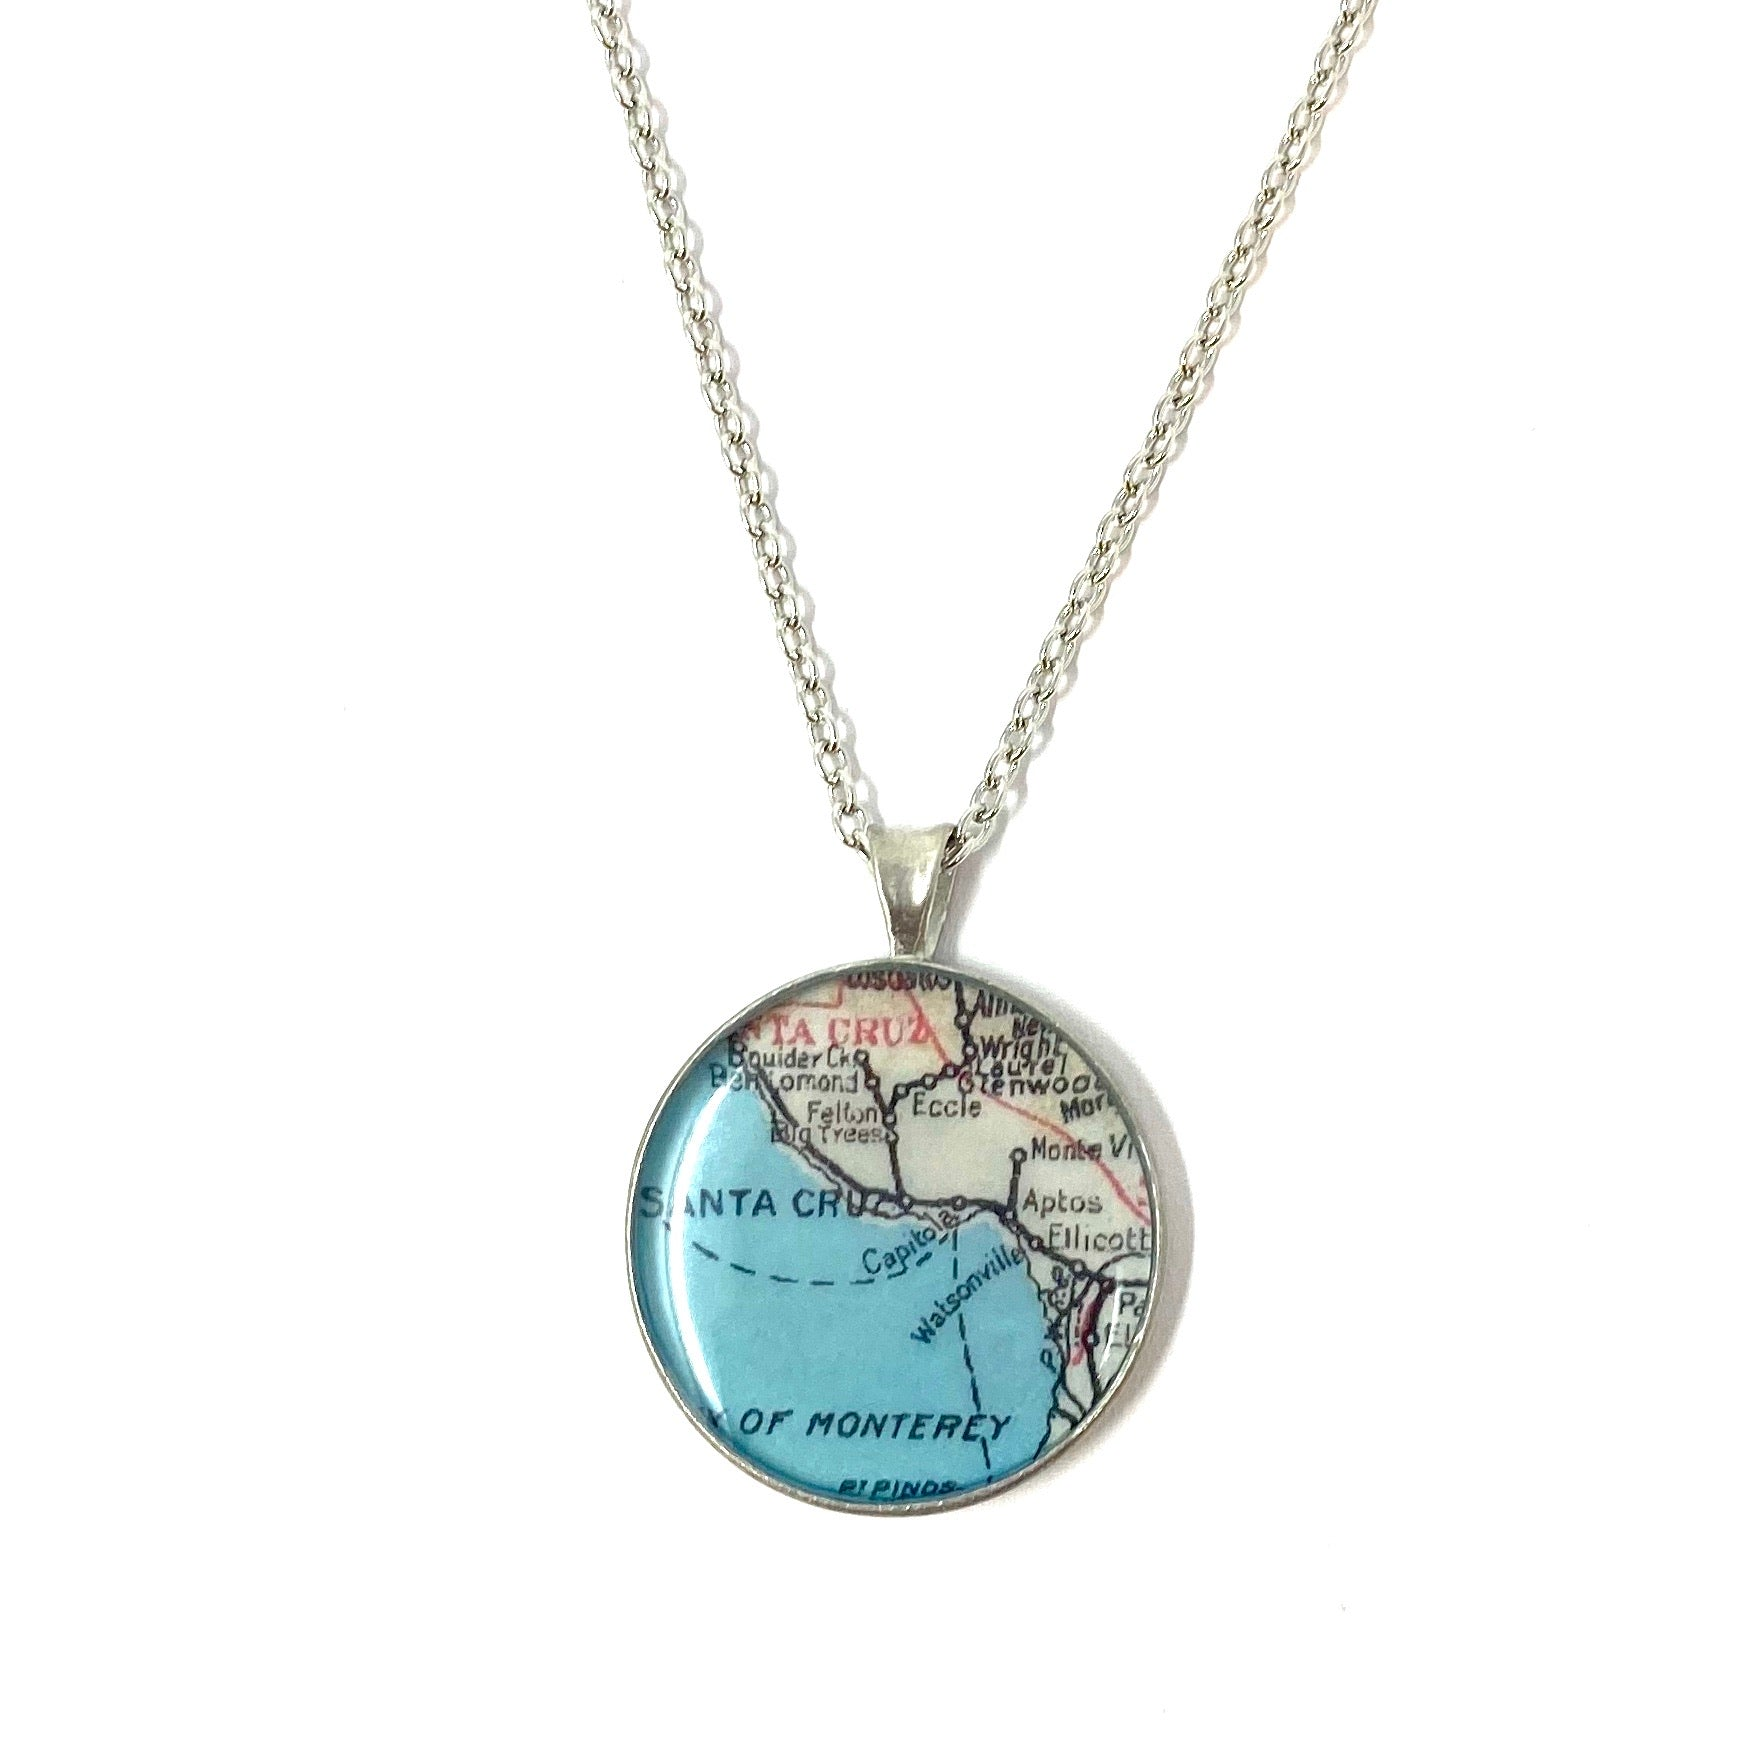 Santa Cruz & Monterey Bay Map Necklace Small Large